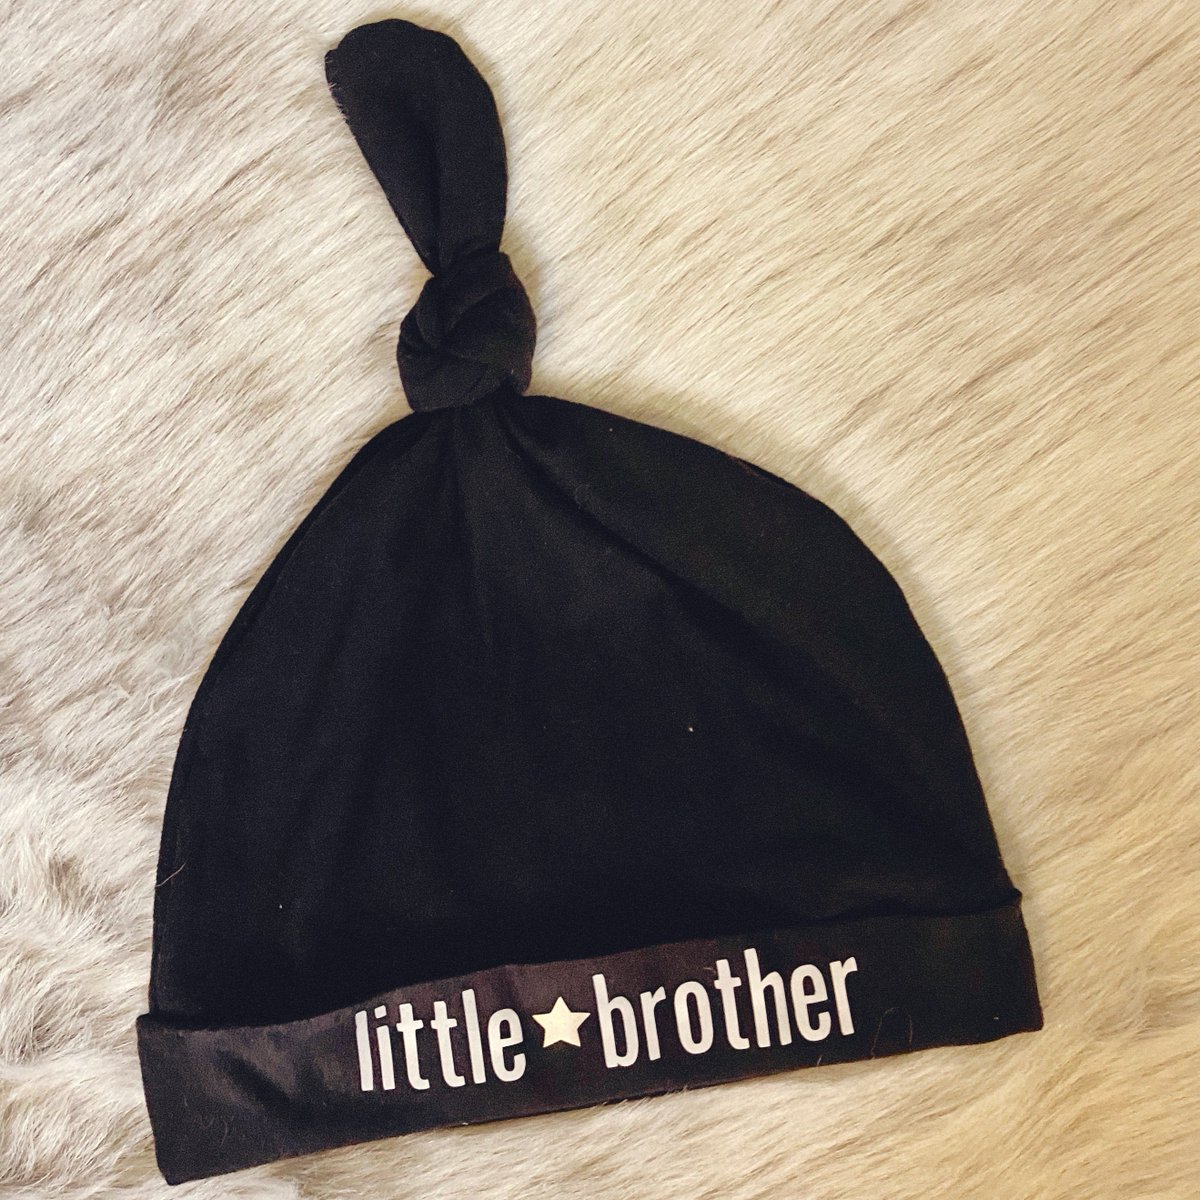 Little brother hat now available in my #etsy shop: Custom Baby Knot Hats in Black White, Teal, Camel, Red, White, Pattern Newborn 0-3 Soft Baby Hats  #accessories #1stbirthday #white #baby #newborn #03months #vinyl #custom #cat